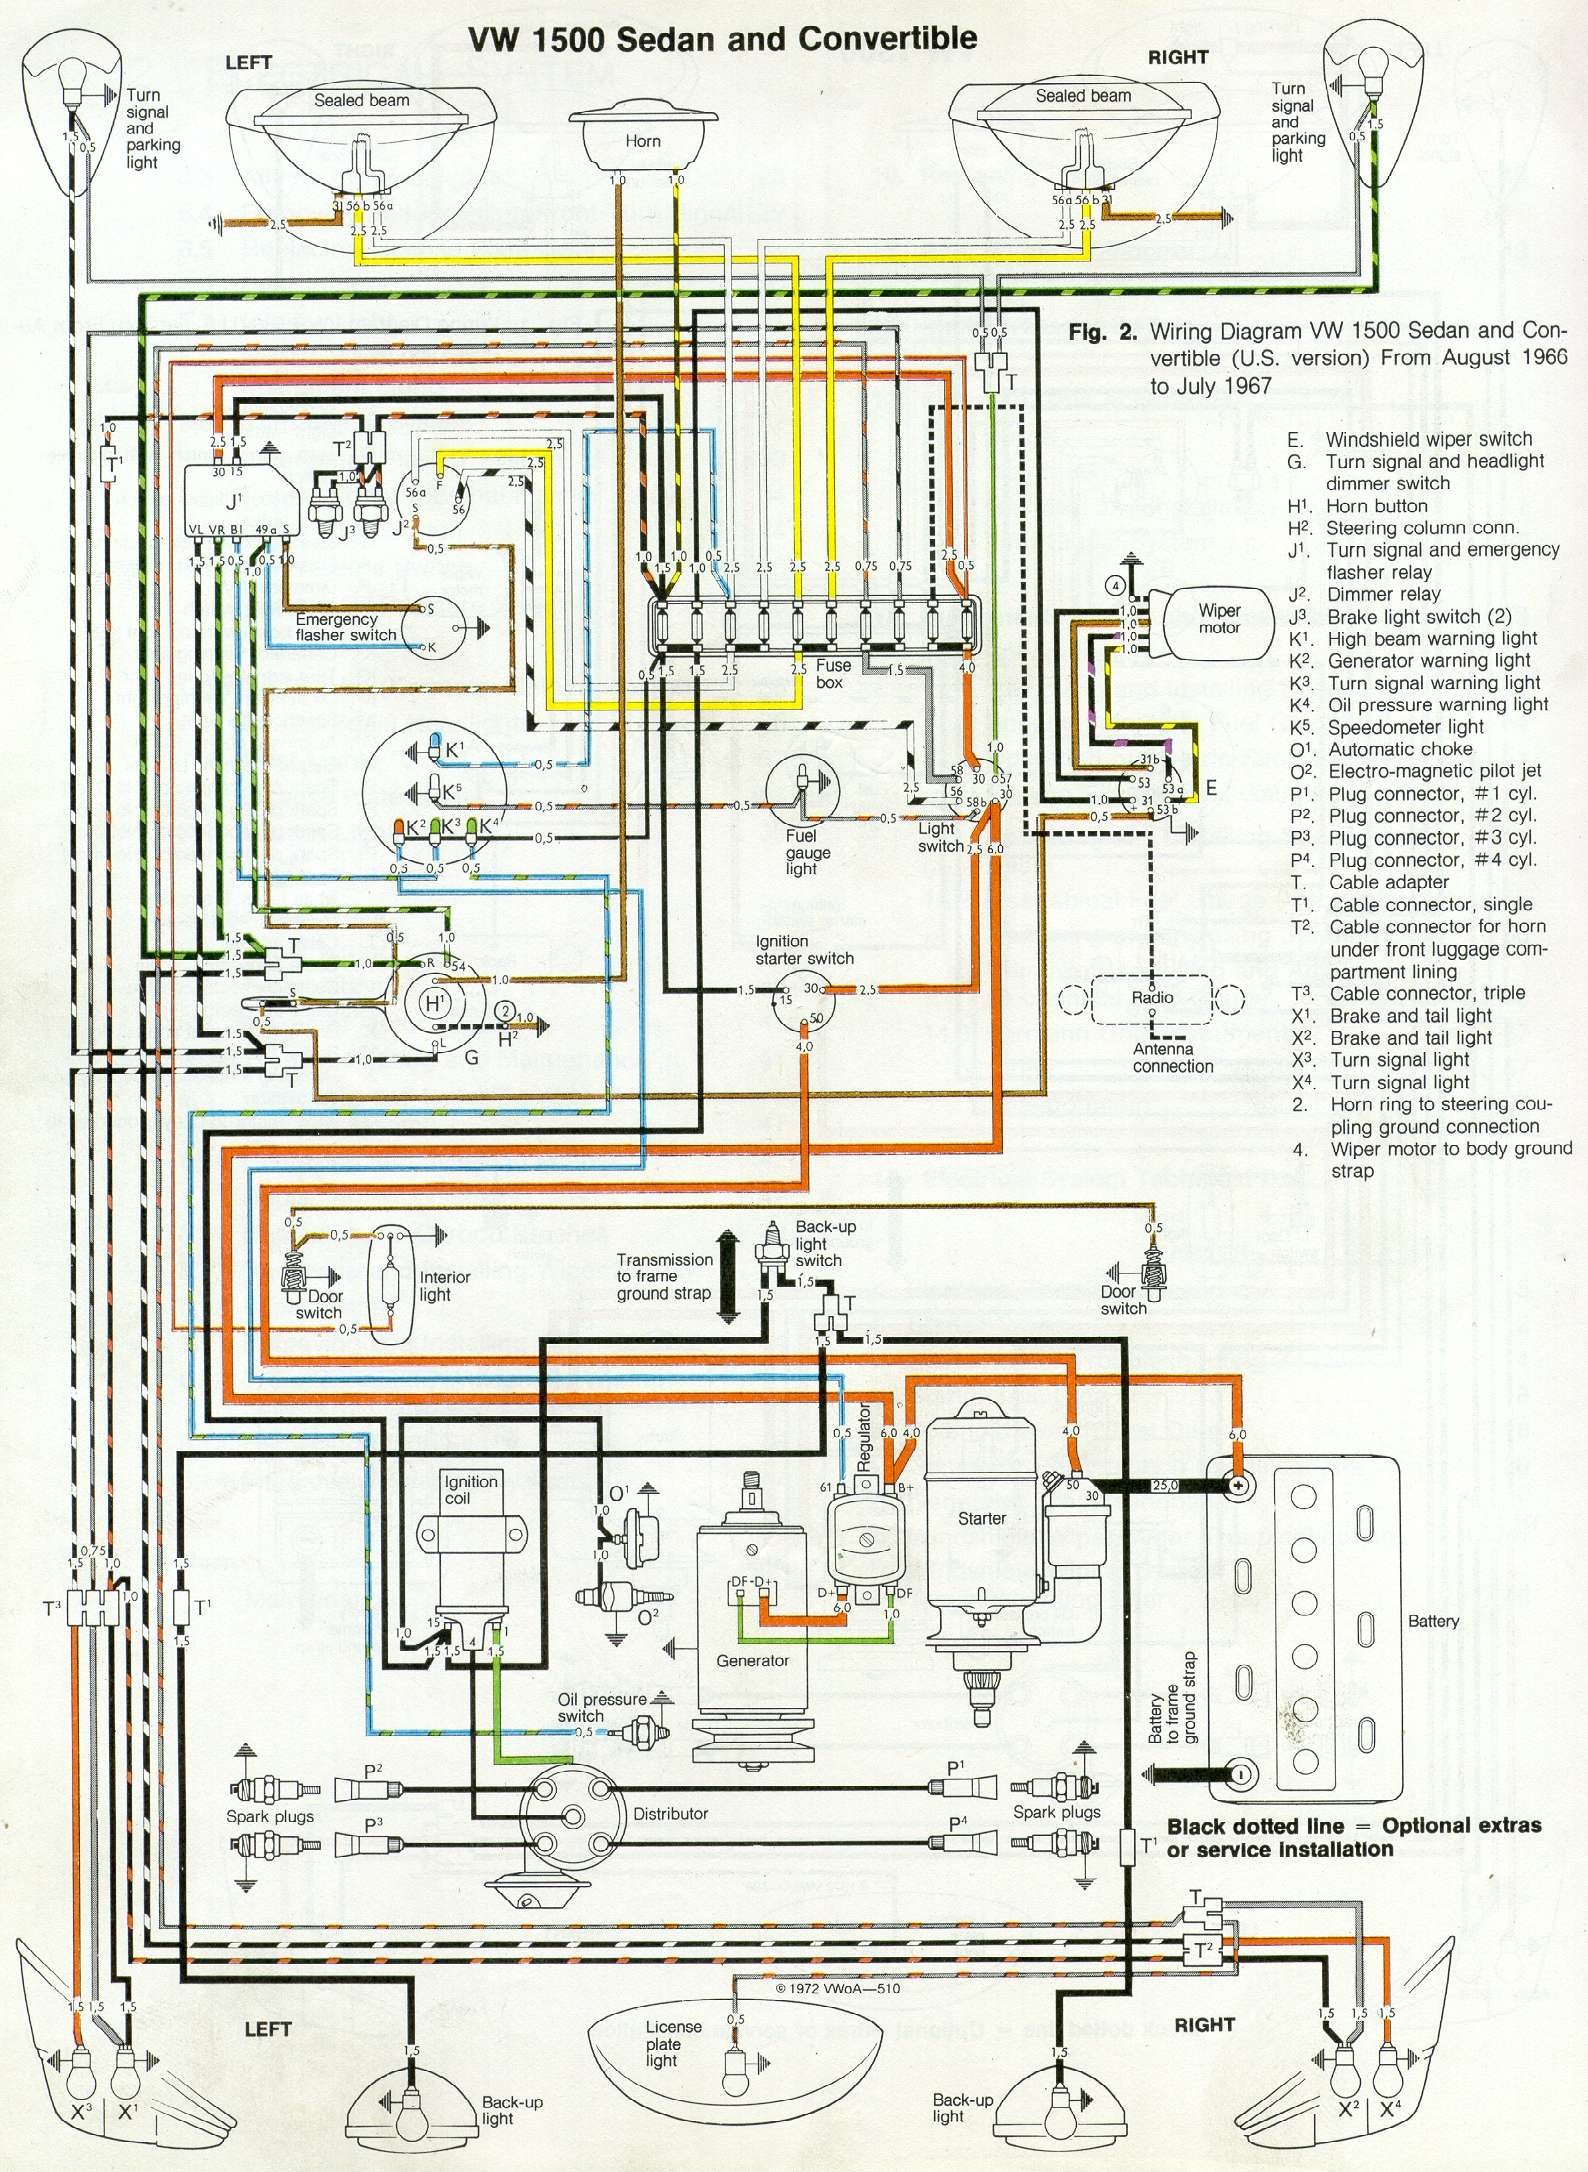 VW bug_1967 other diagrams vw beach buggy wiring diagram at suagrazia.org